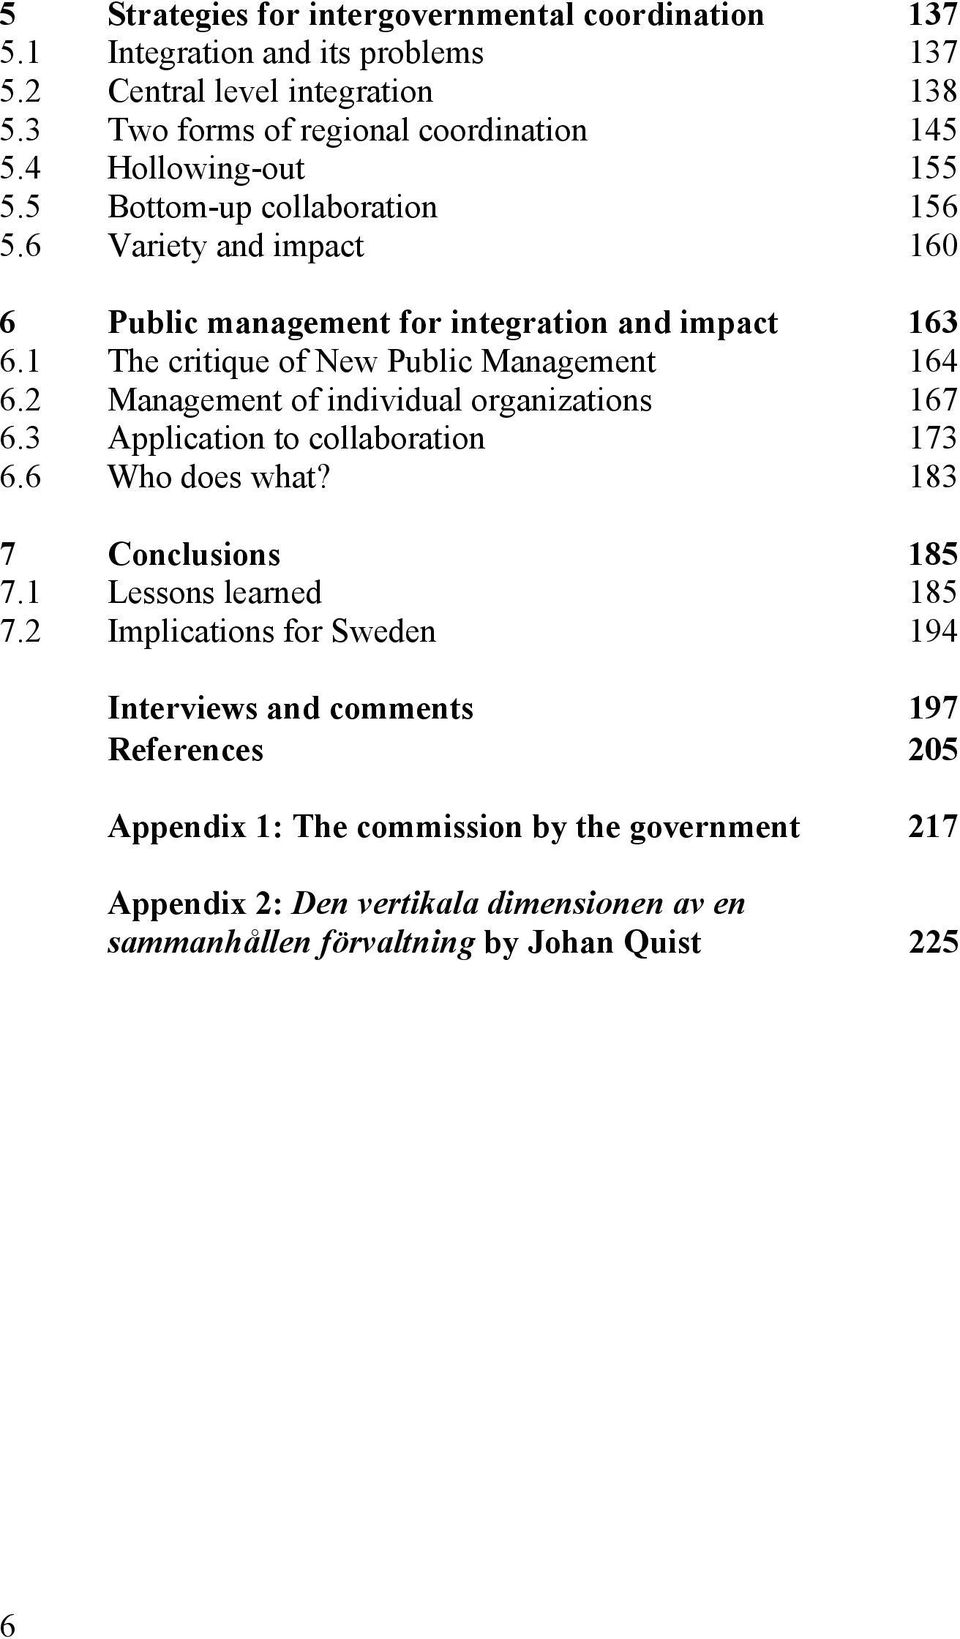 1 The critique of New Public Management 164 6.2 Management of individual organizations 167 6.3 Application to collaboration 173 6.6 Who does what? 183 7 Conclusions 185 7.